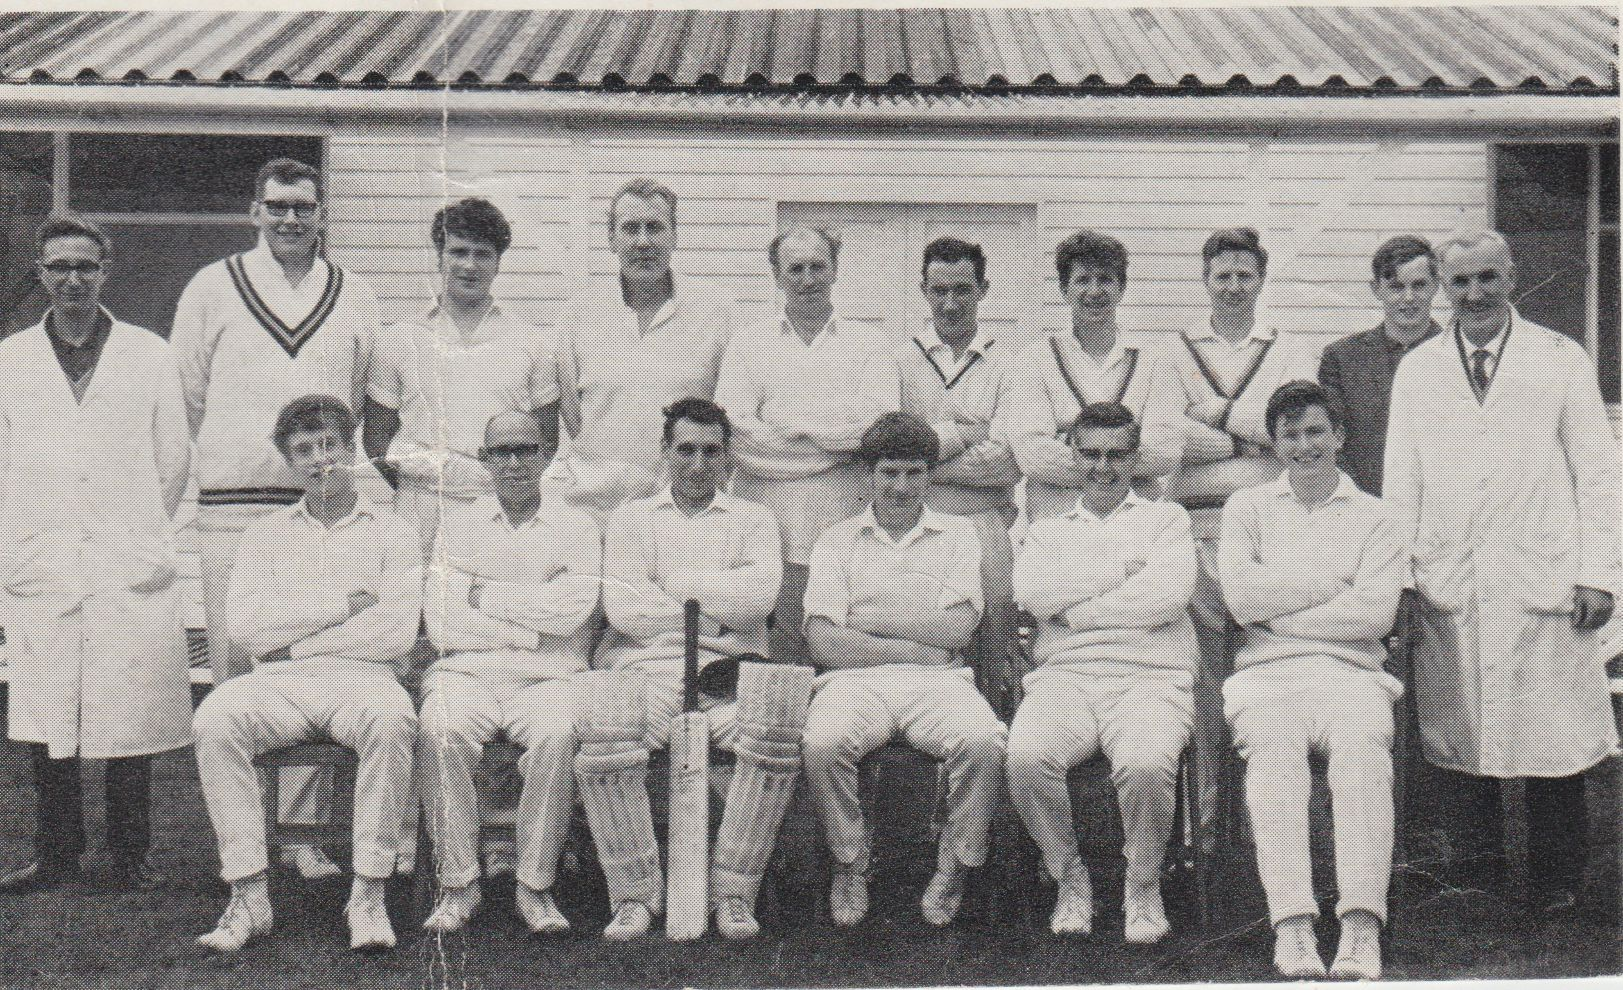 cricket_pavilion_1967_team_0001.jpg